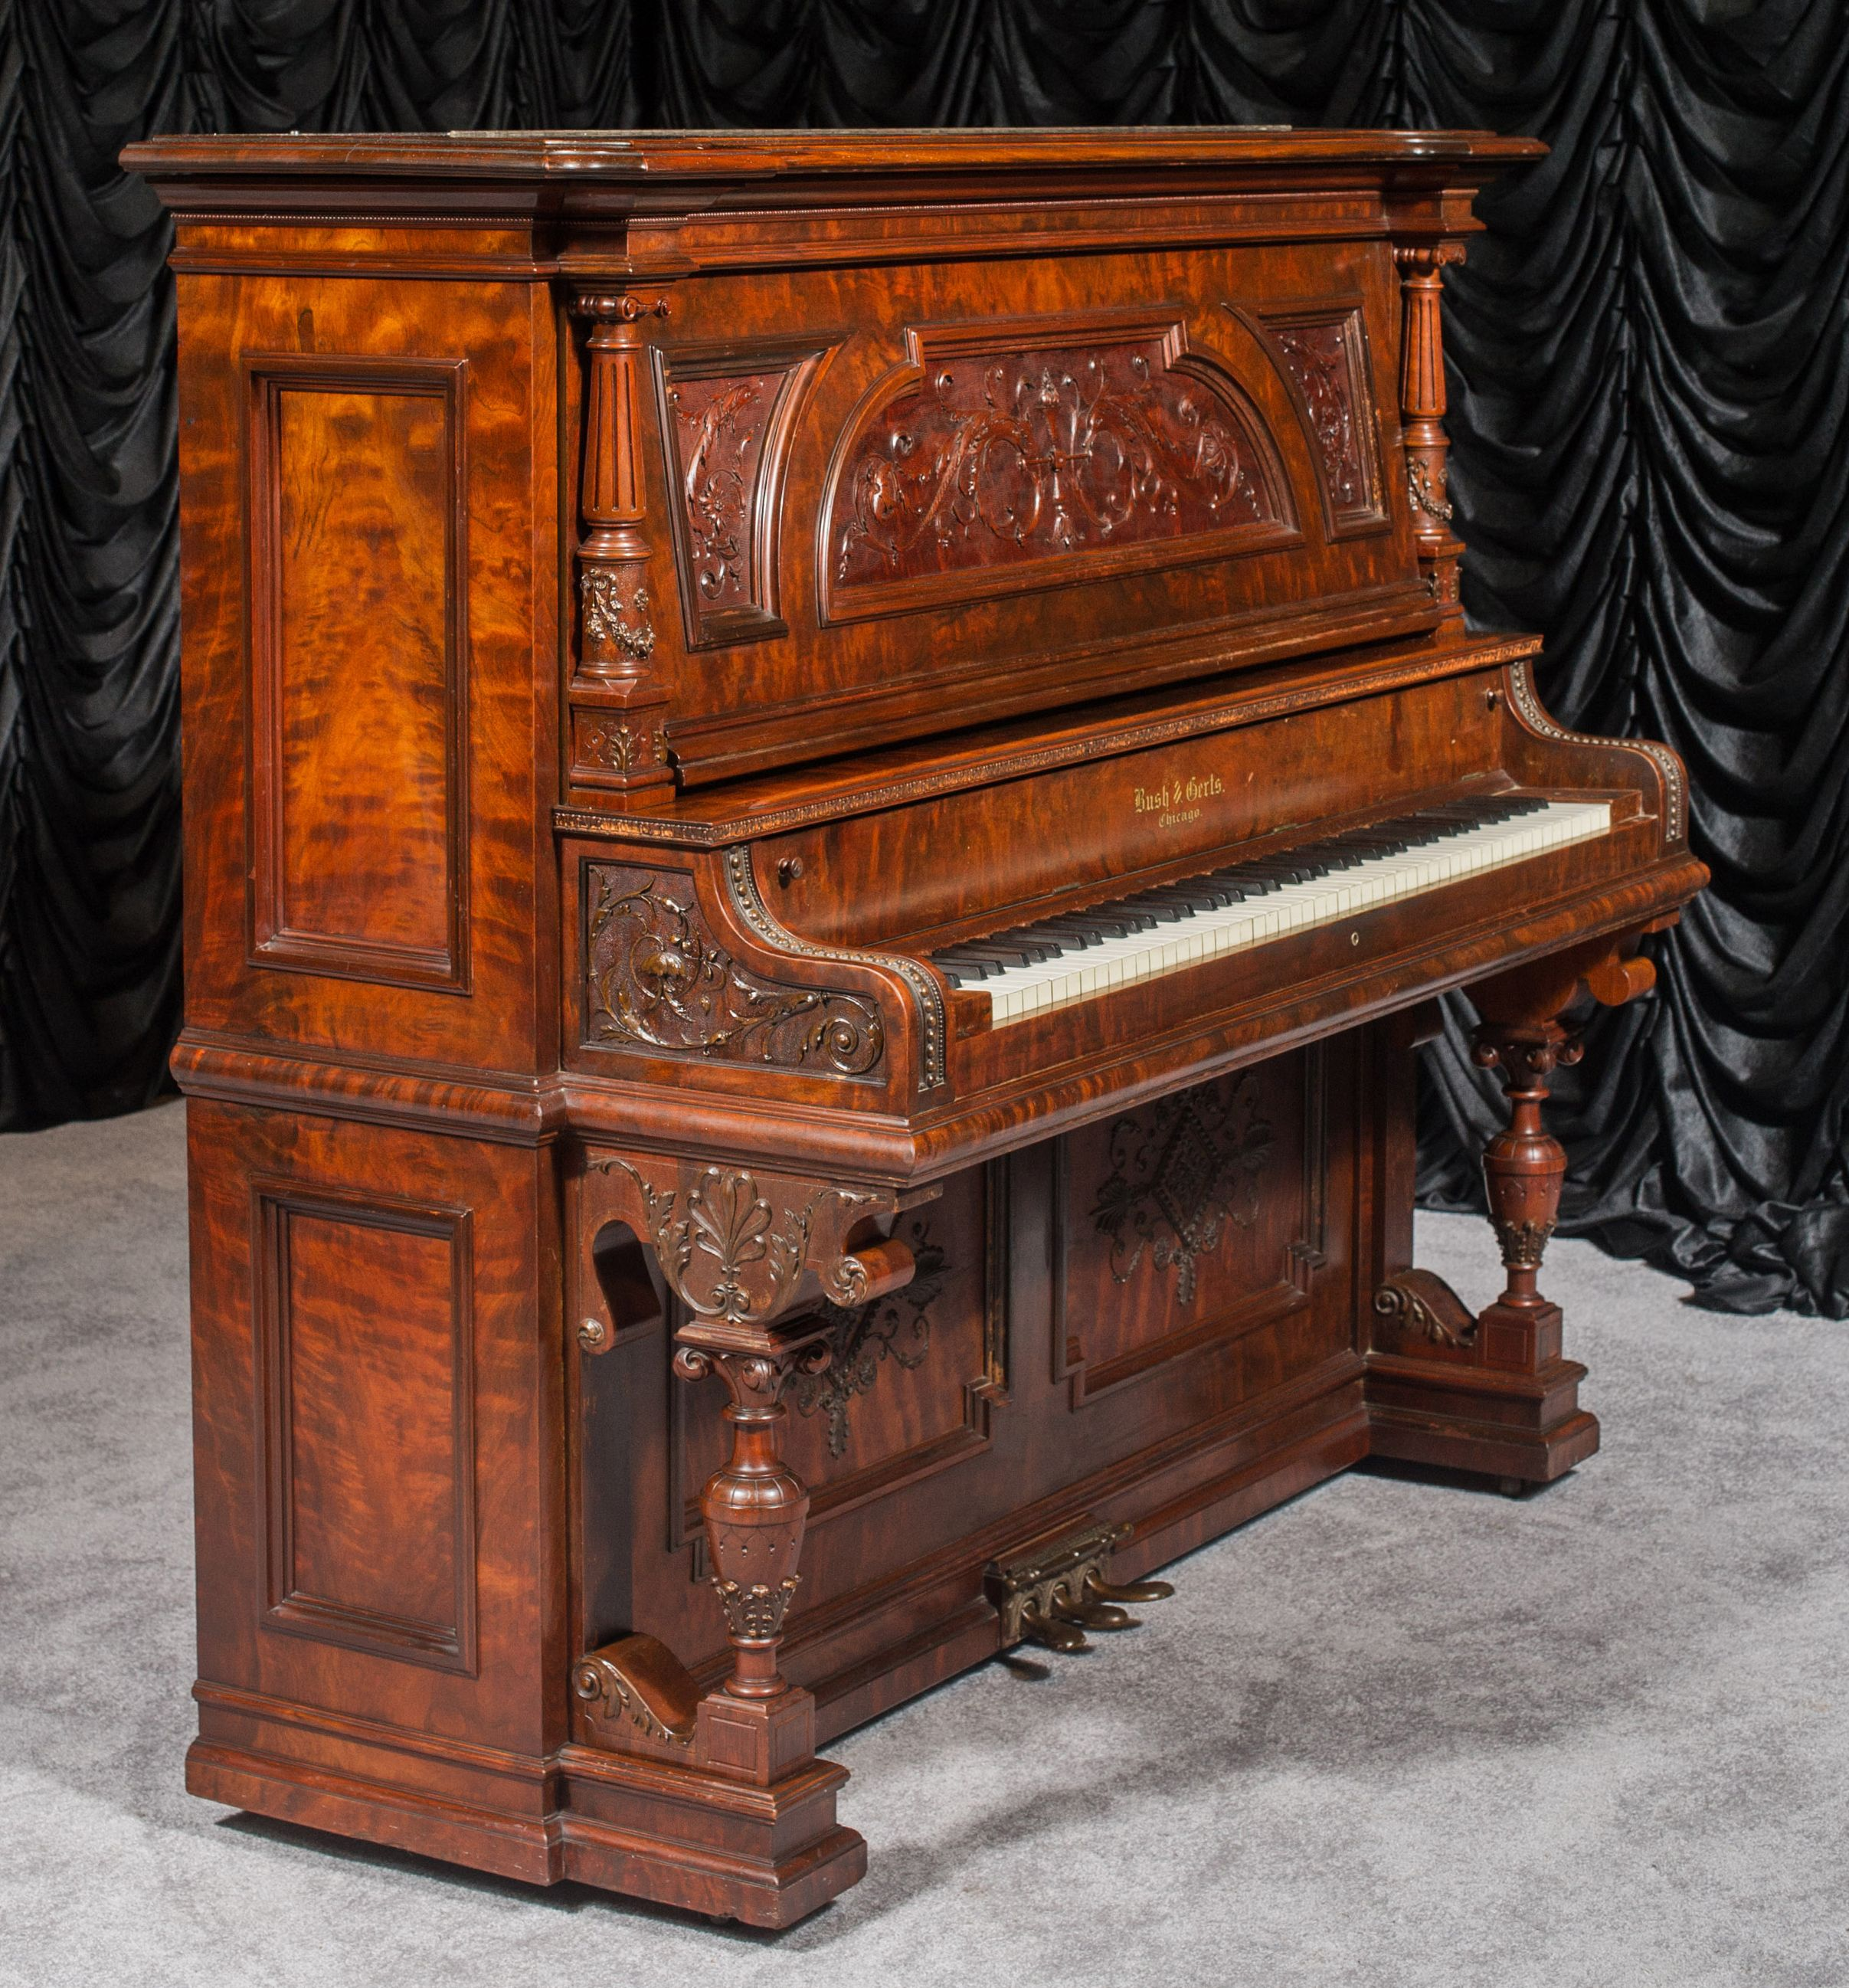 Antique Furniture Upright Victorian Piano With Fluting And Inlaid Decoration Well Loved And Used. Antiques